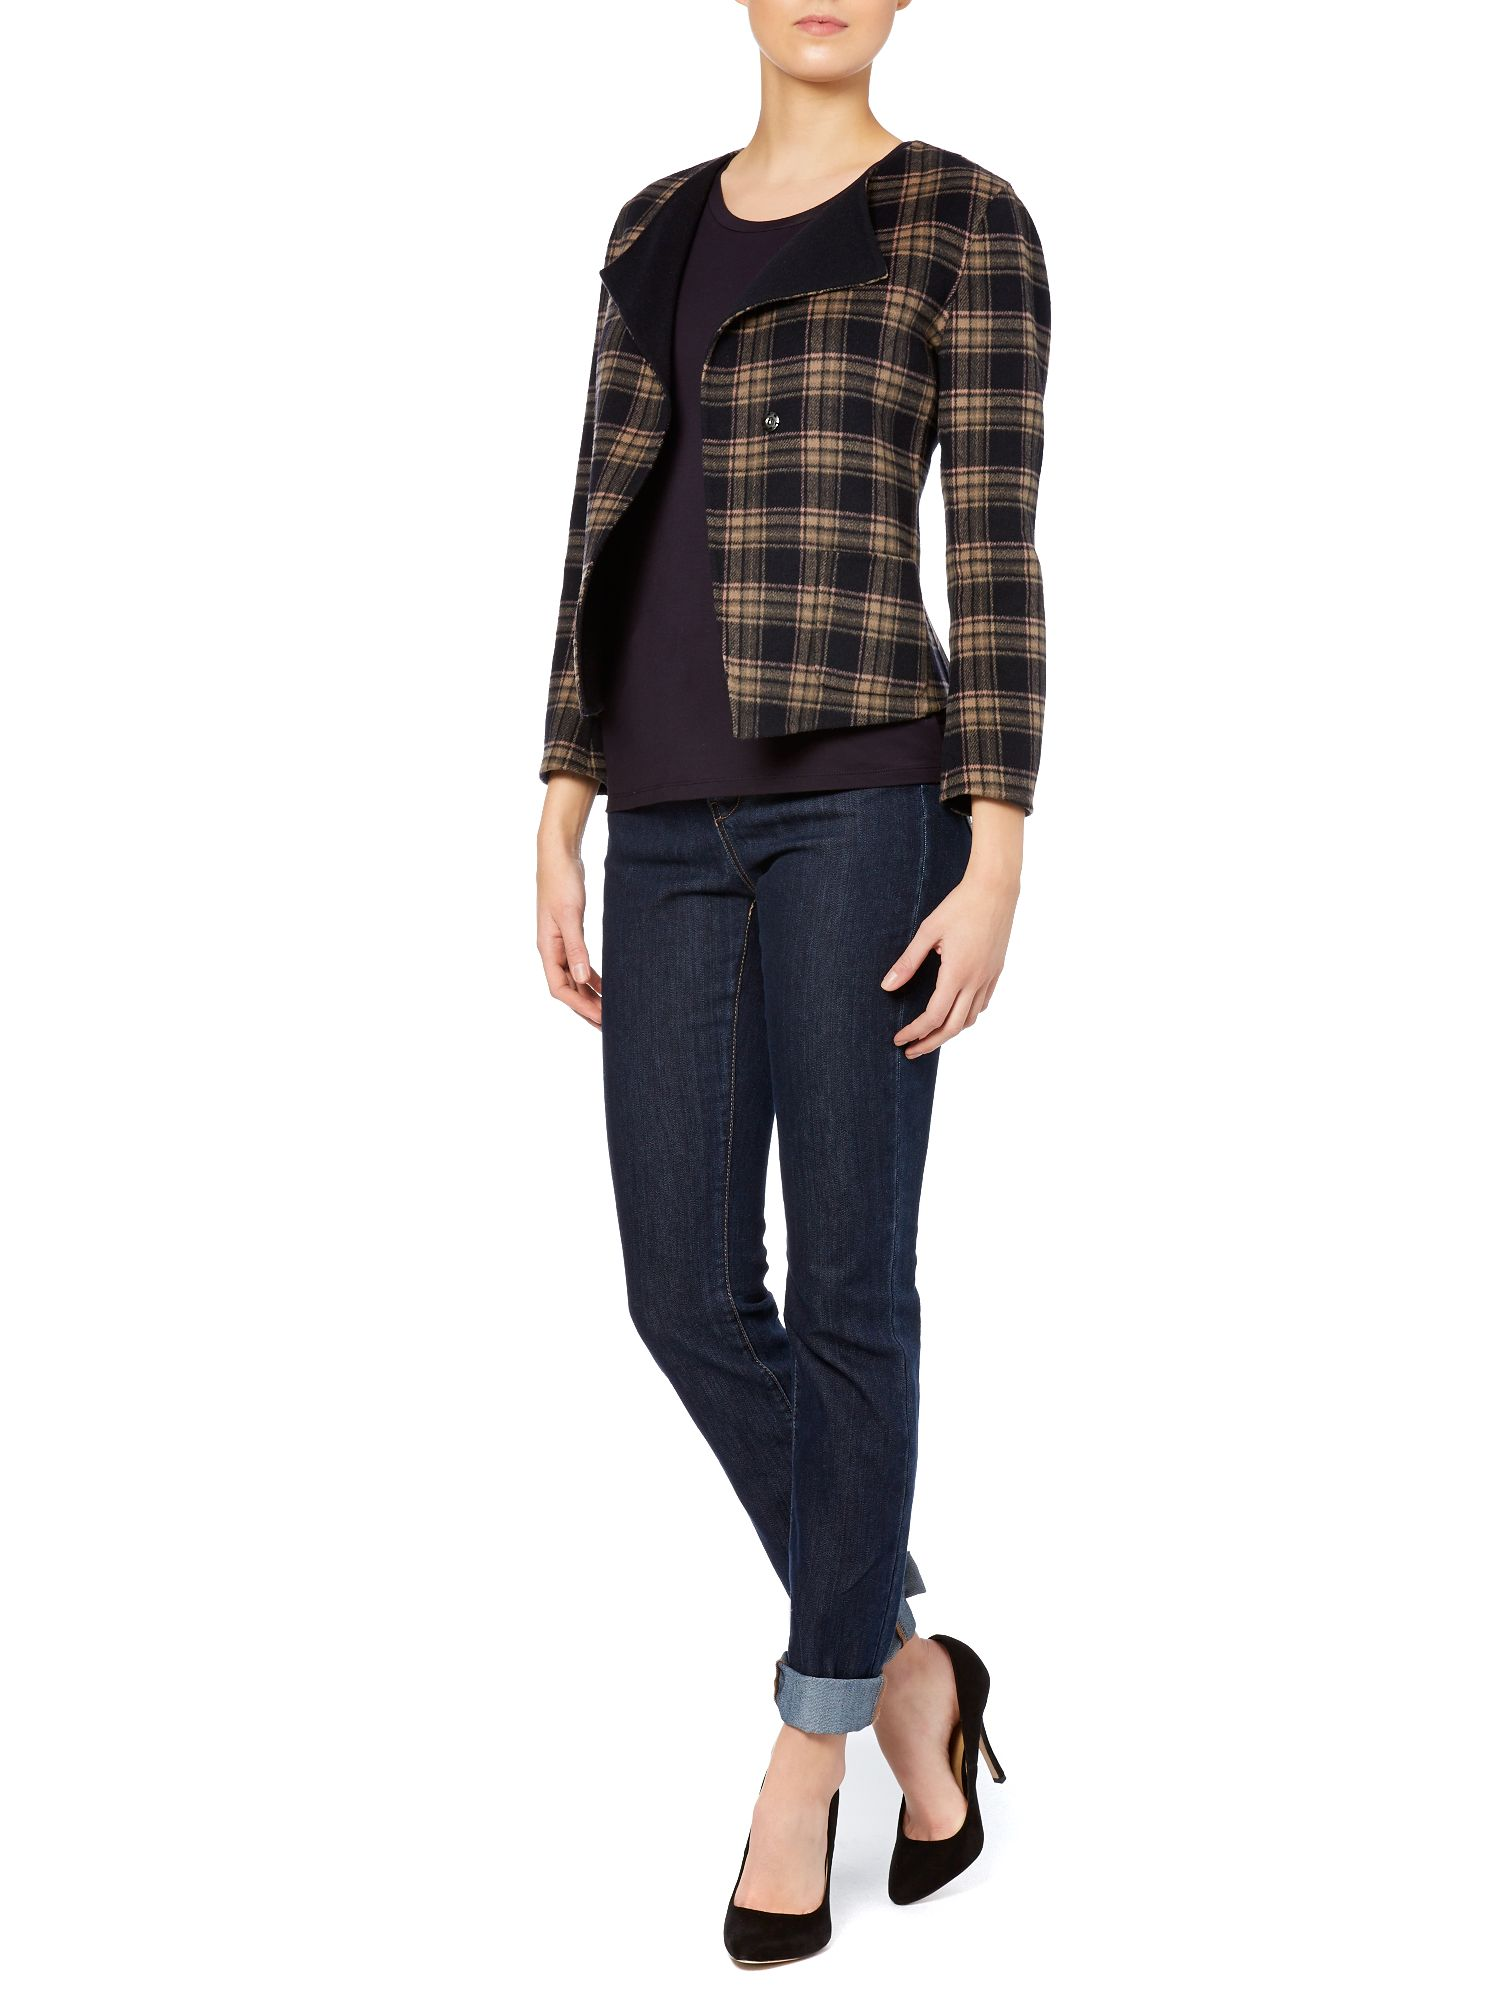 Renza double faced wool tartan jacket